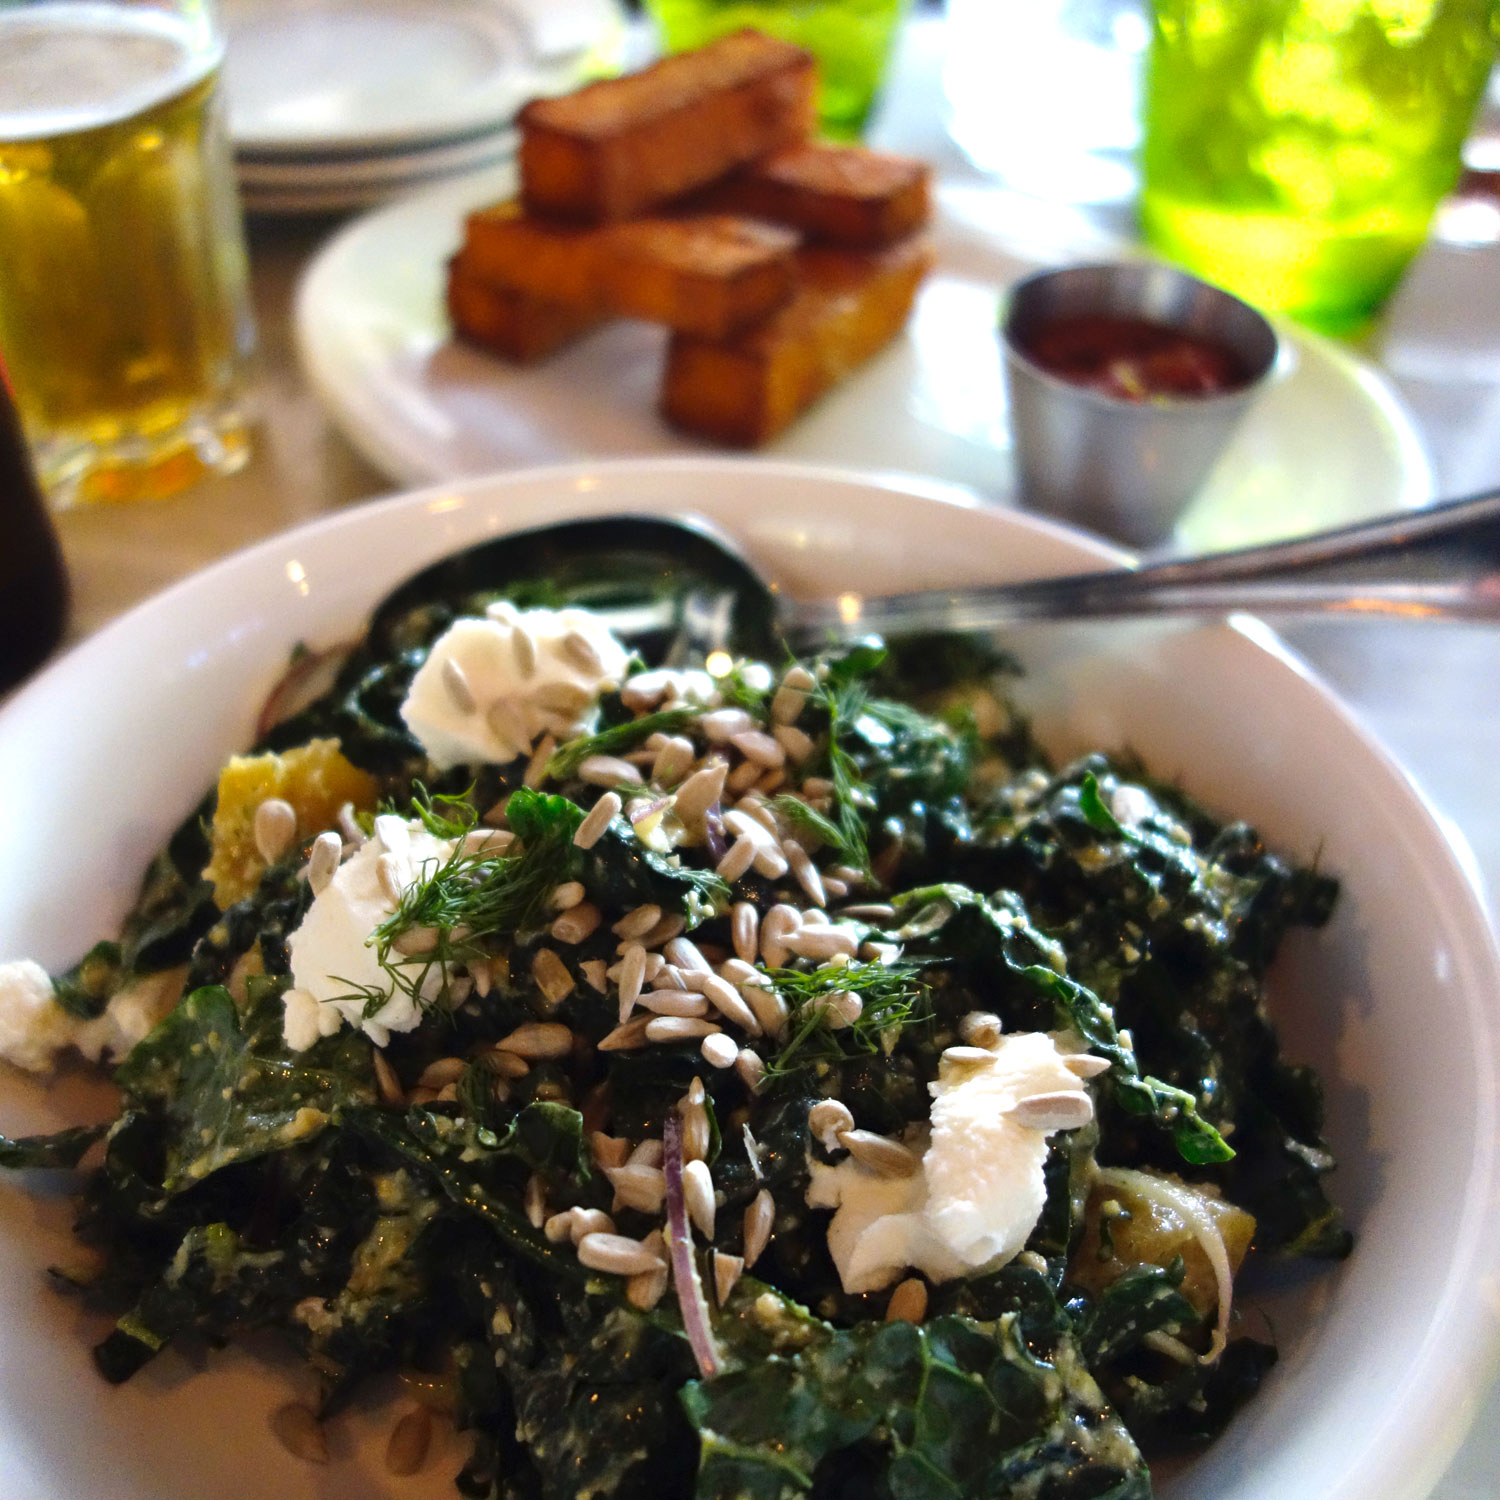 Kale Salad with Polenta Fries making an encore appearance